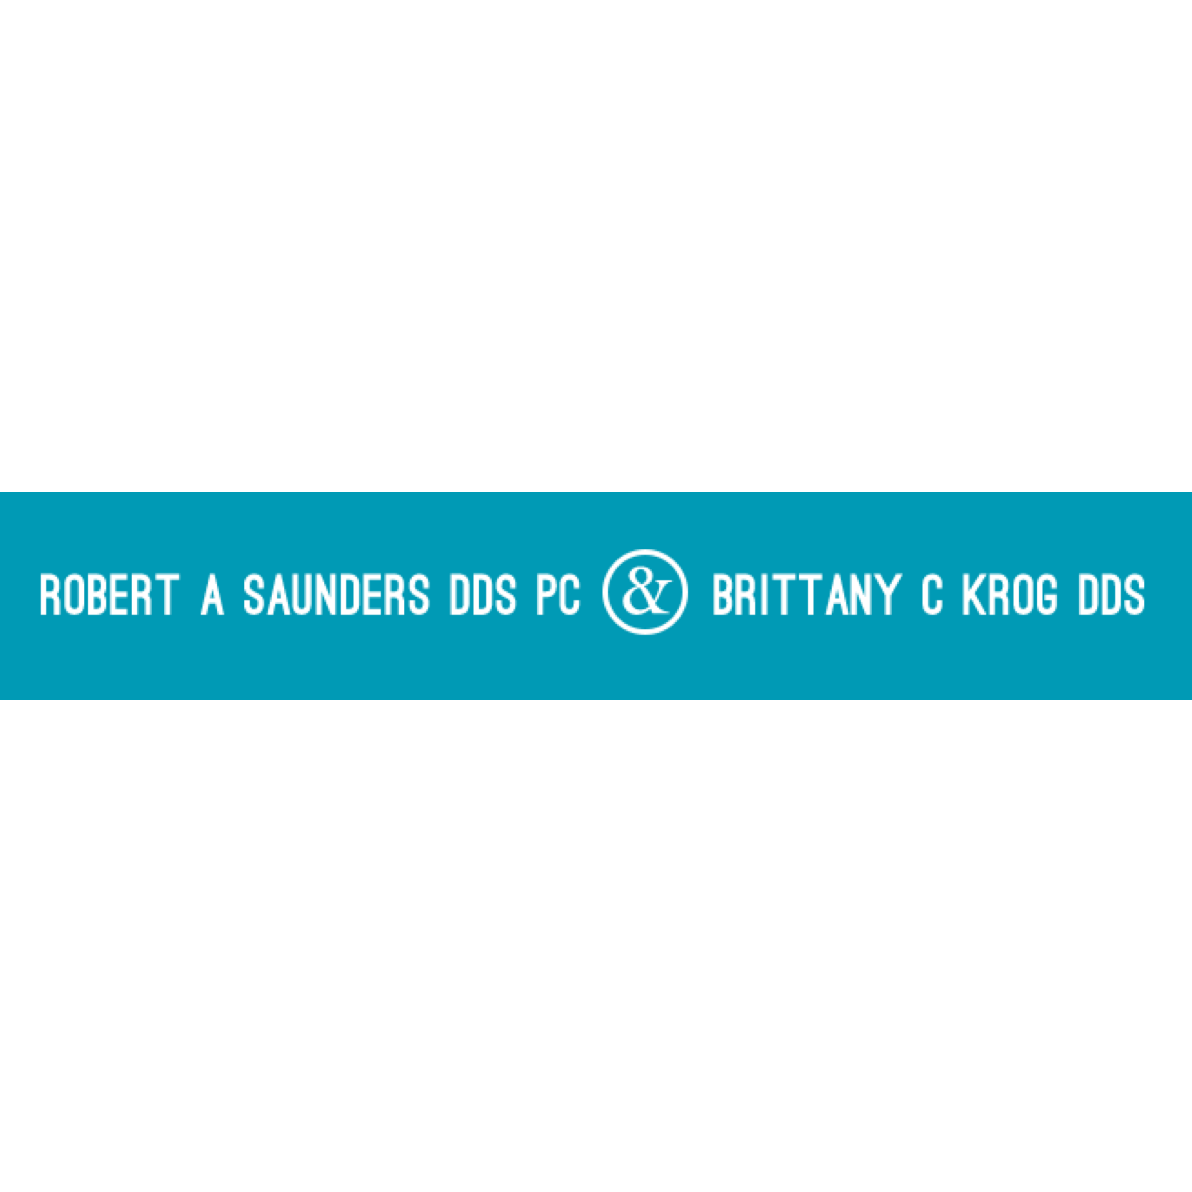 Robert A Saunders DDS PC & Brittany C Krog DDS